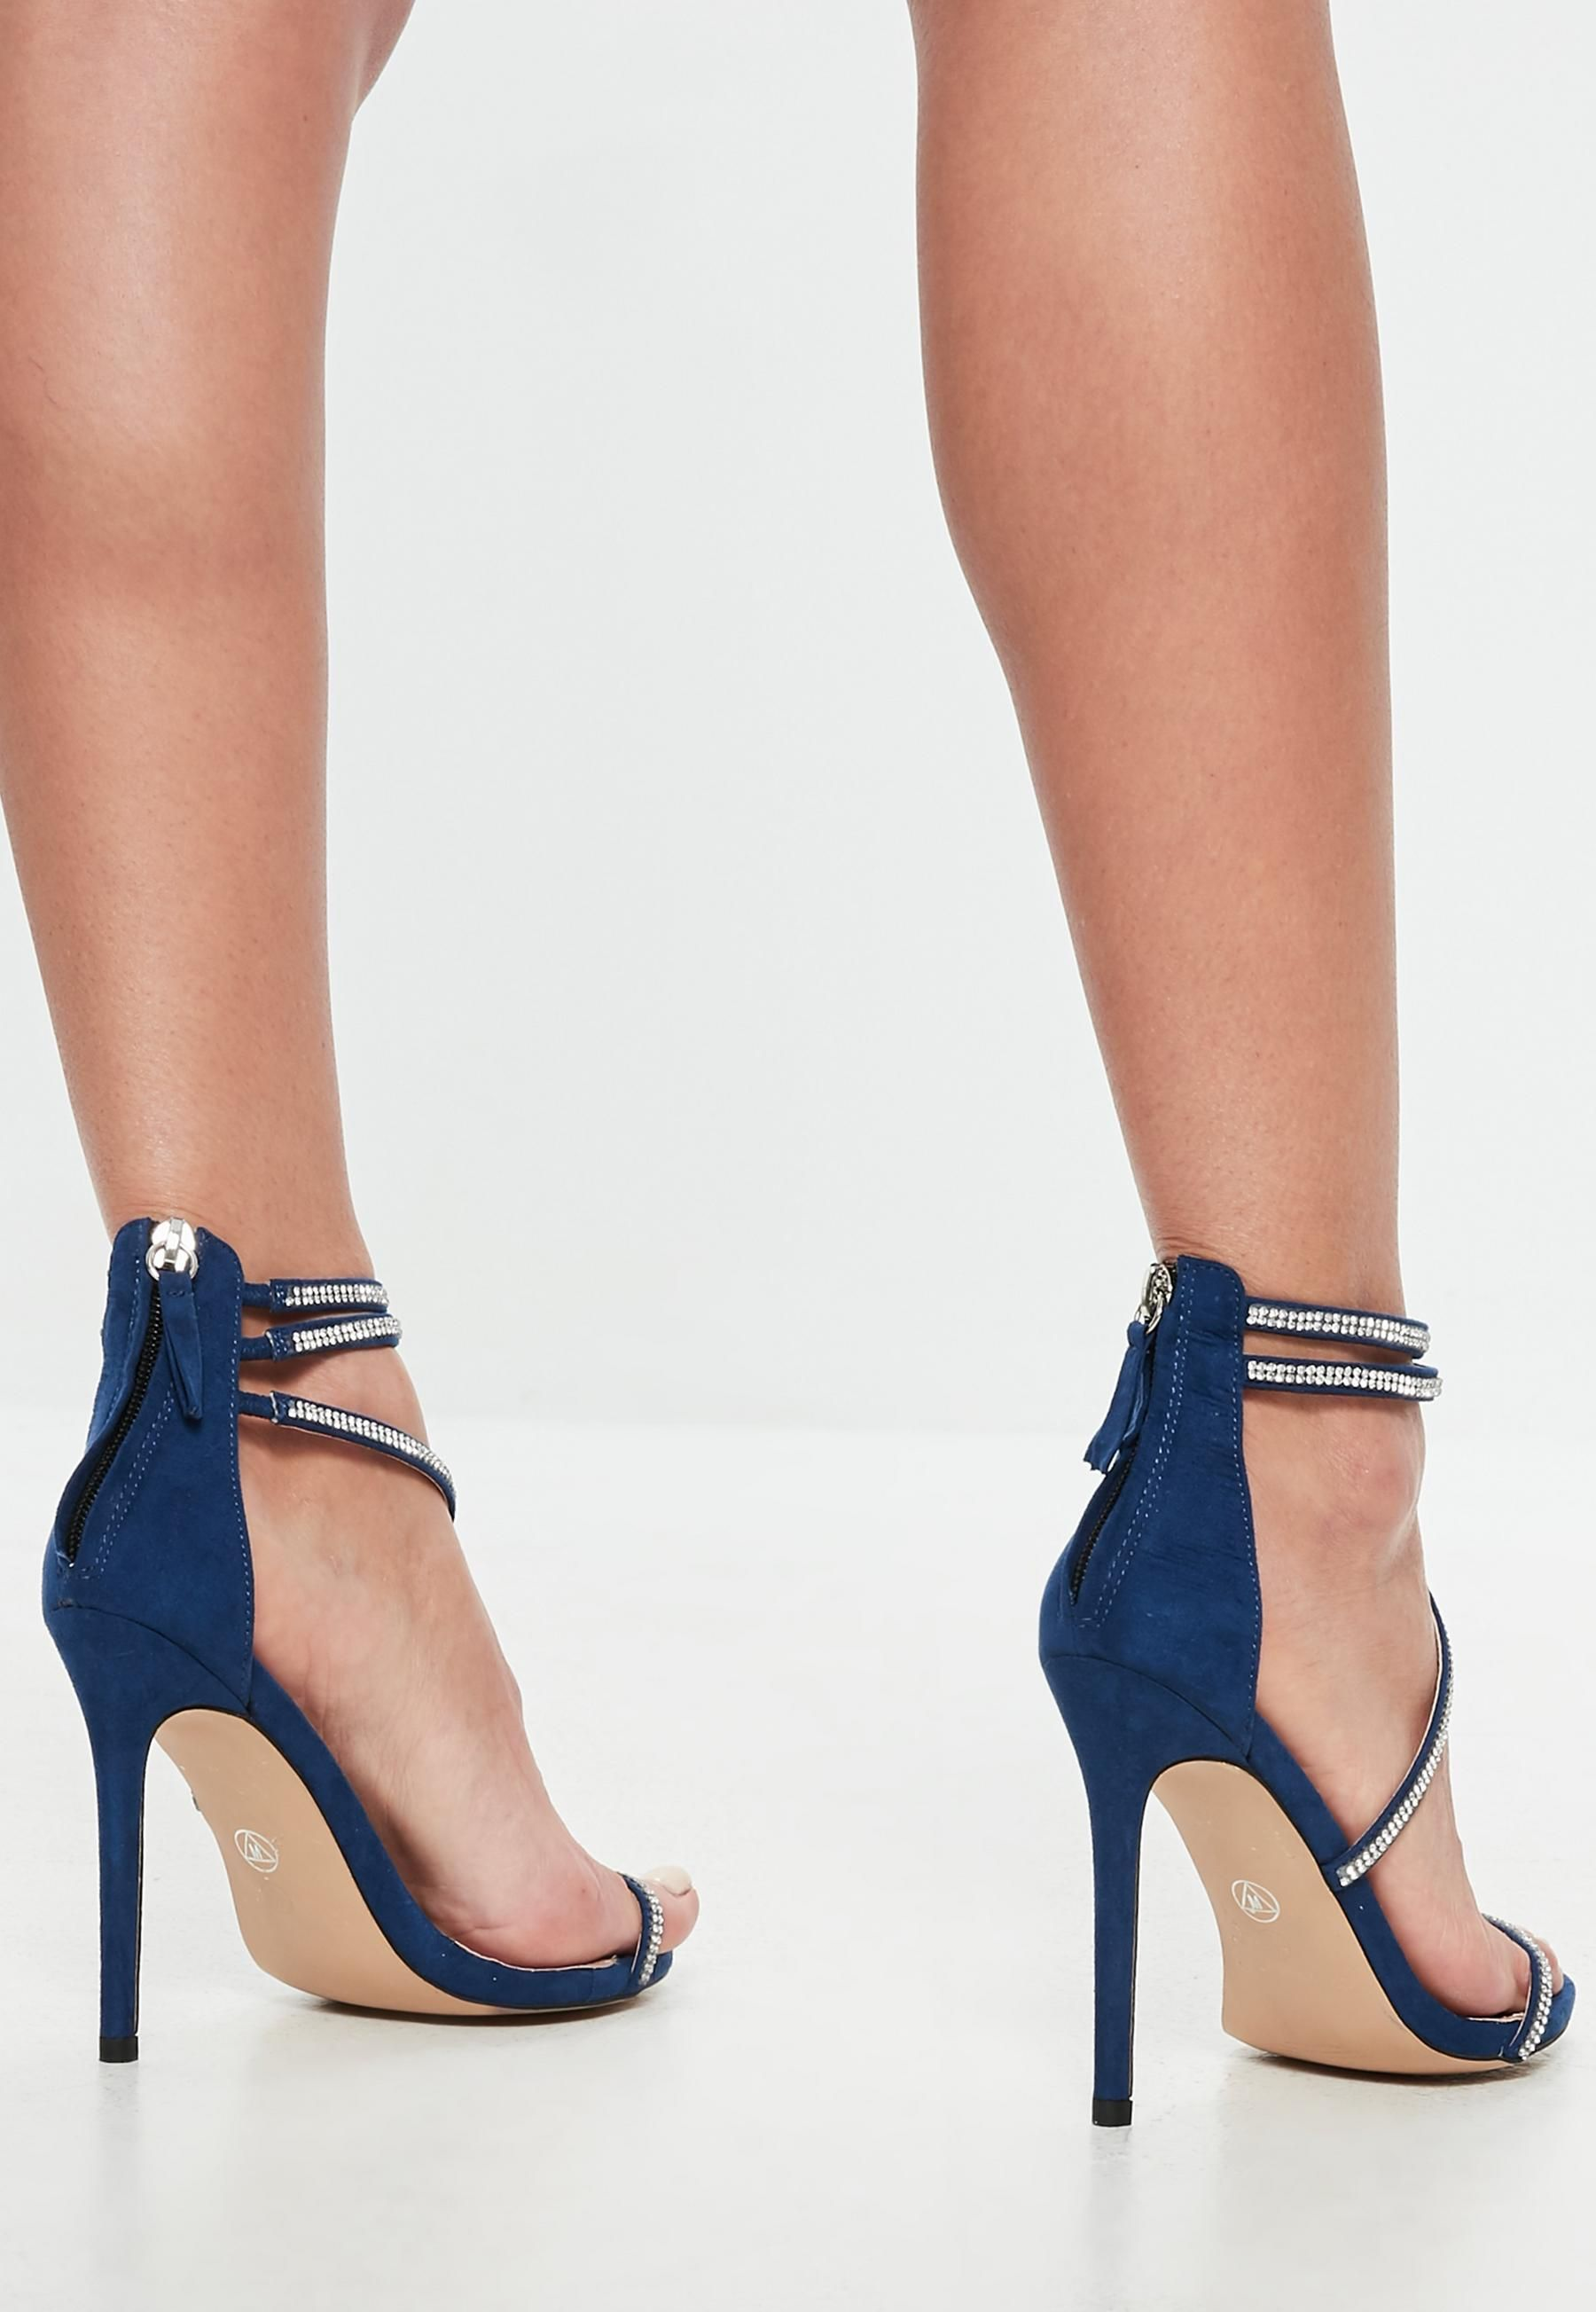 b5e8cc41e Navy Faux Suede Embellished Barely There Heels | Missguided ...